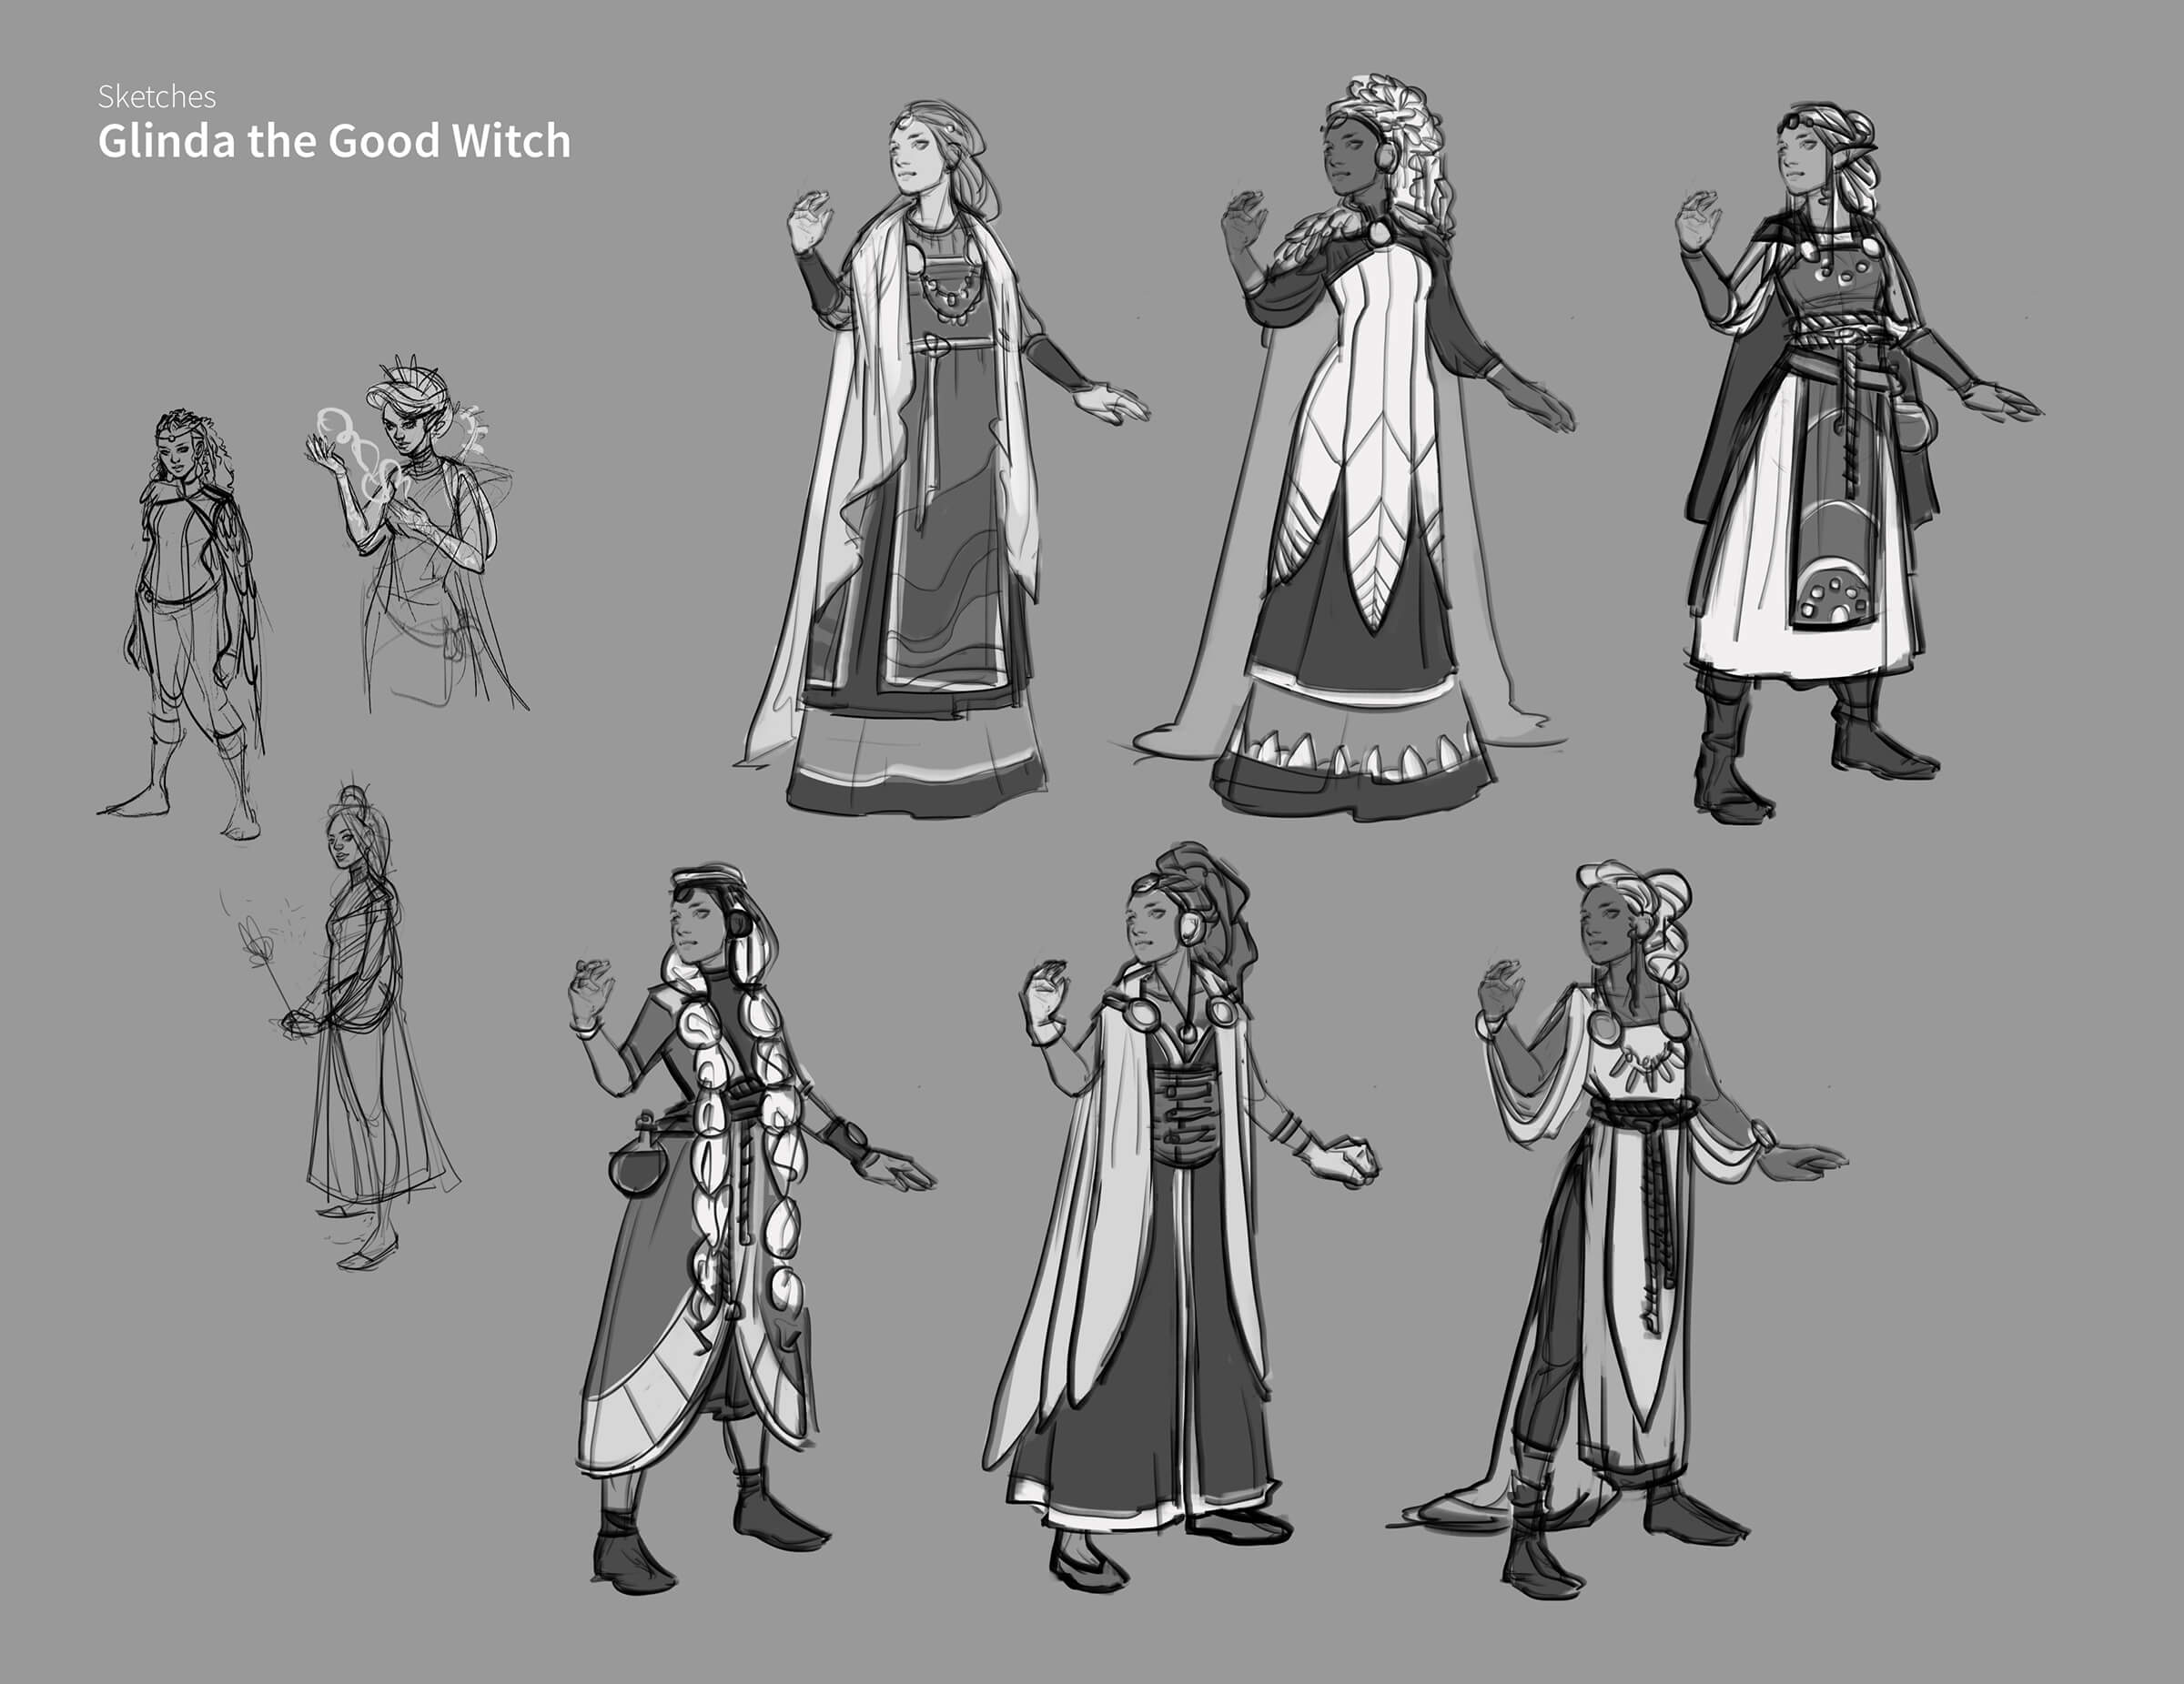 A character named Glinda the Good Witch in various costumes